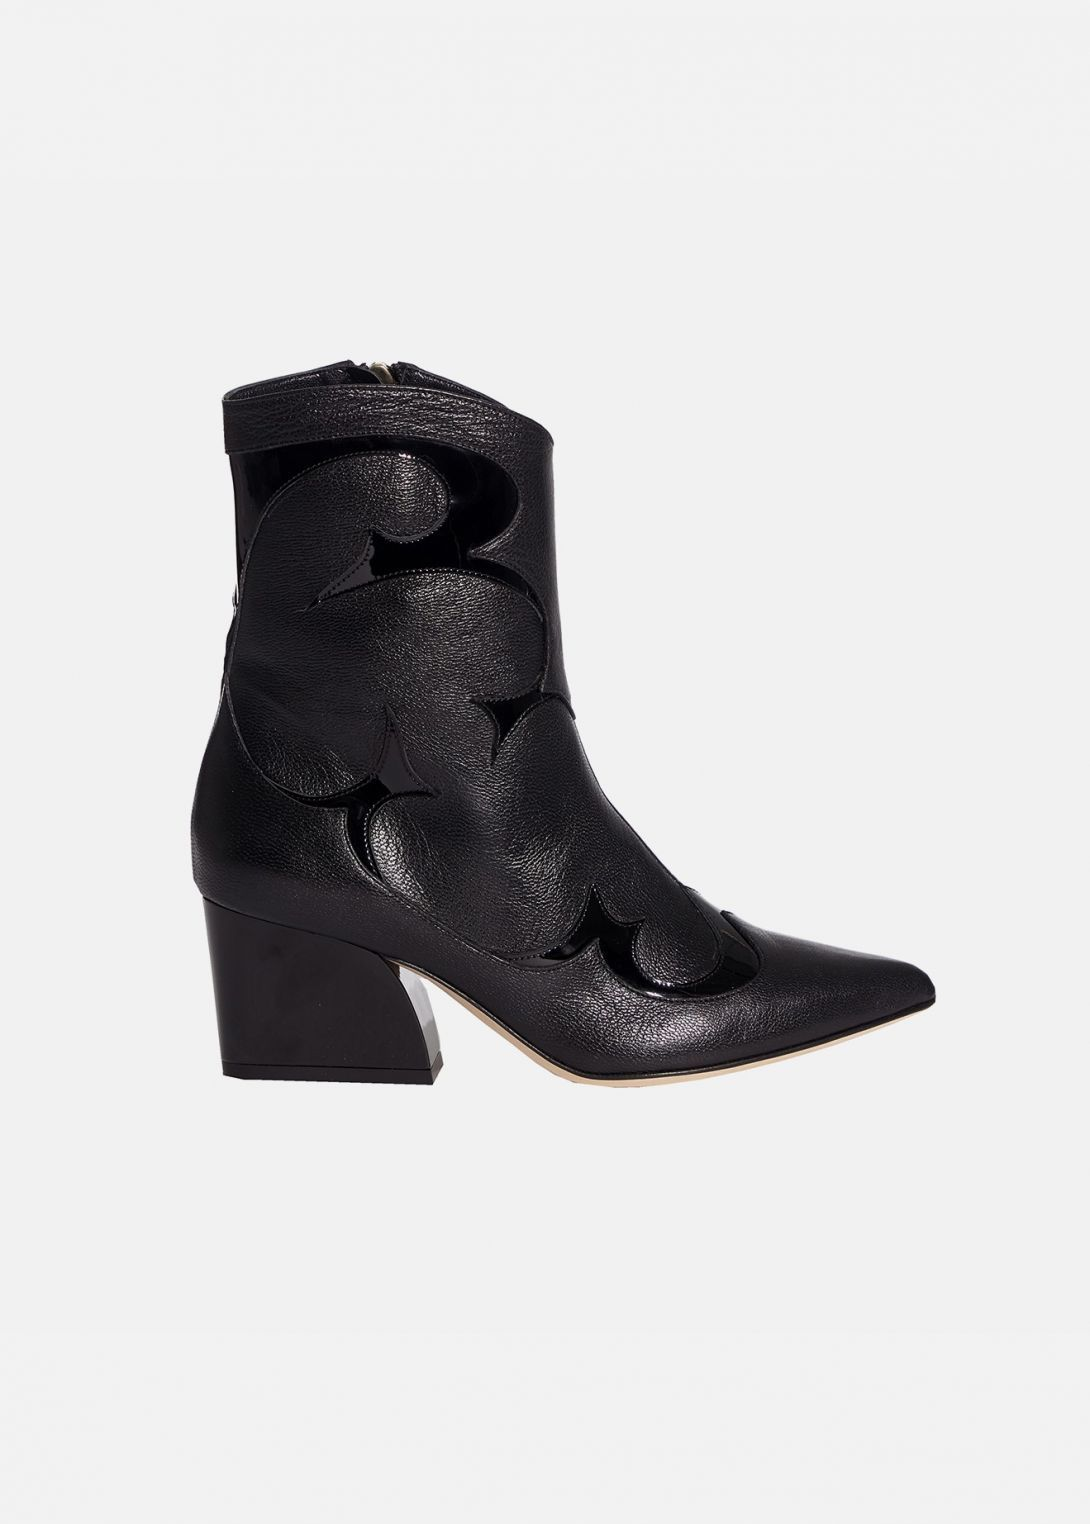 85c366cce8e6 The Best Black Ankle Boots   Booties For Fall 2018